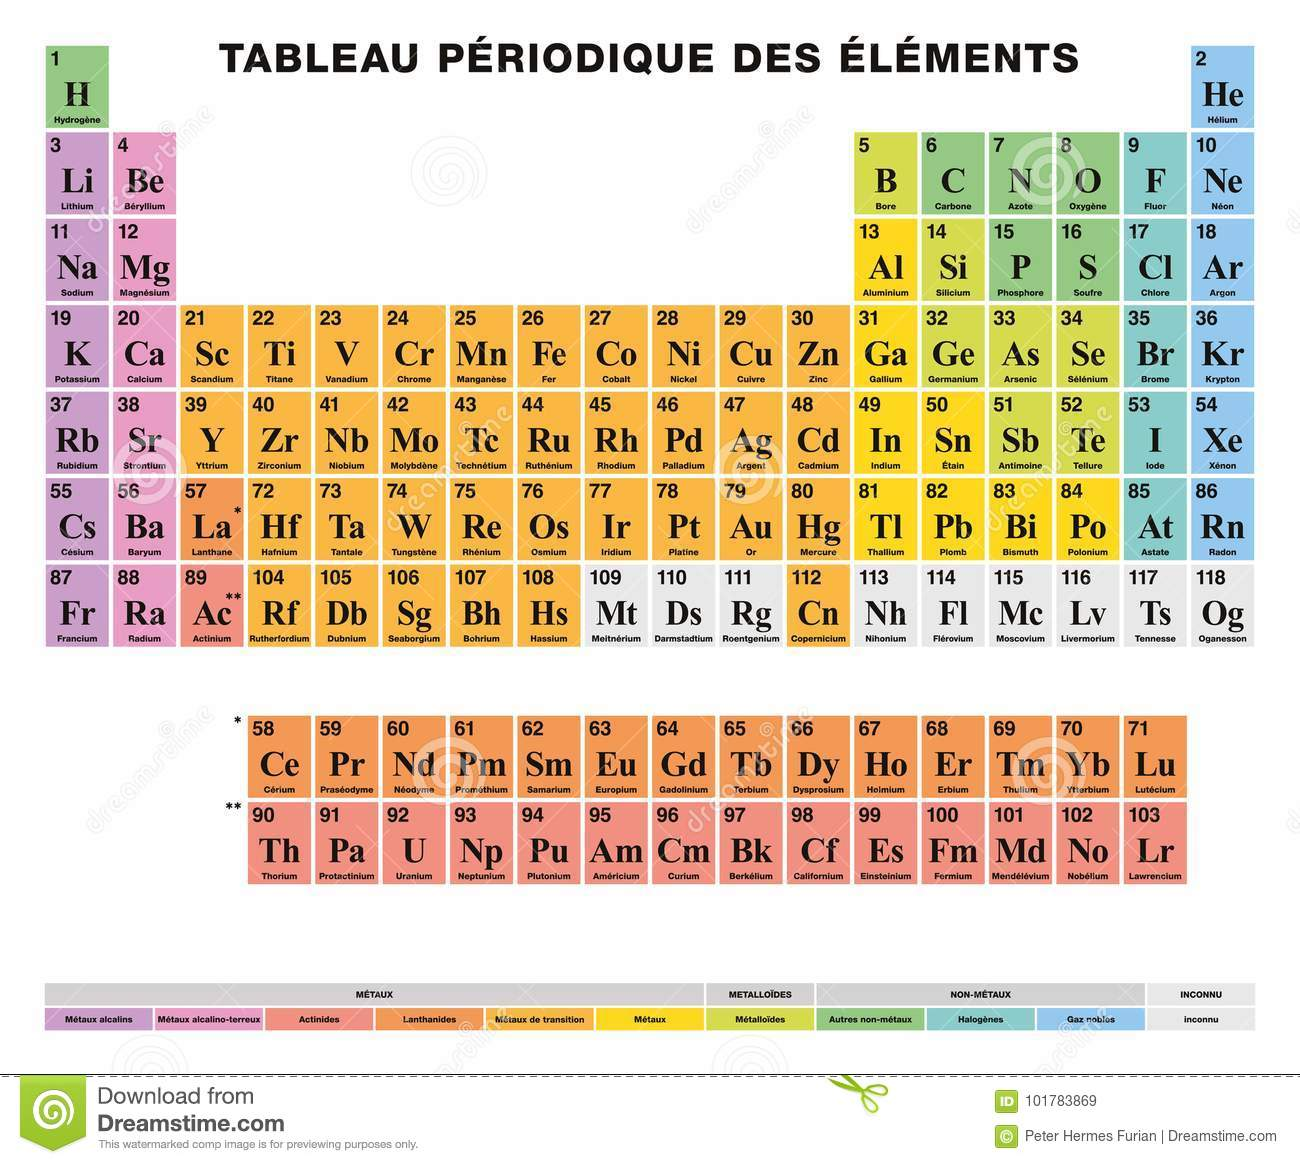 Cyanide periodic table gallery periodic table images sargent welch periodic table image collections periodic table images pete mckee periodic table gallery periodic table gamestrikefo Image collections